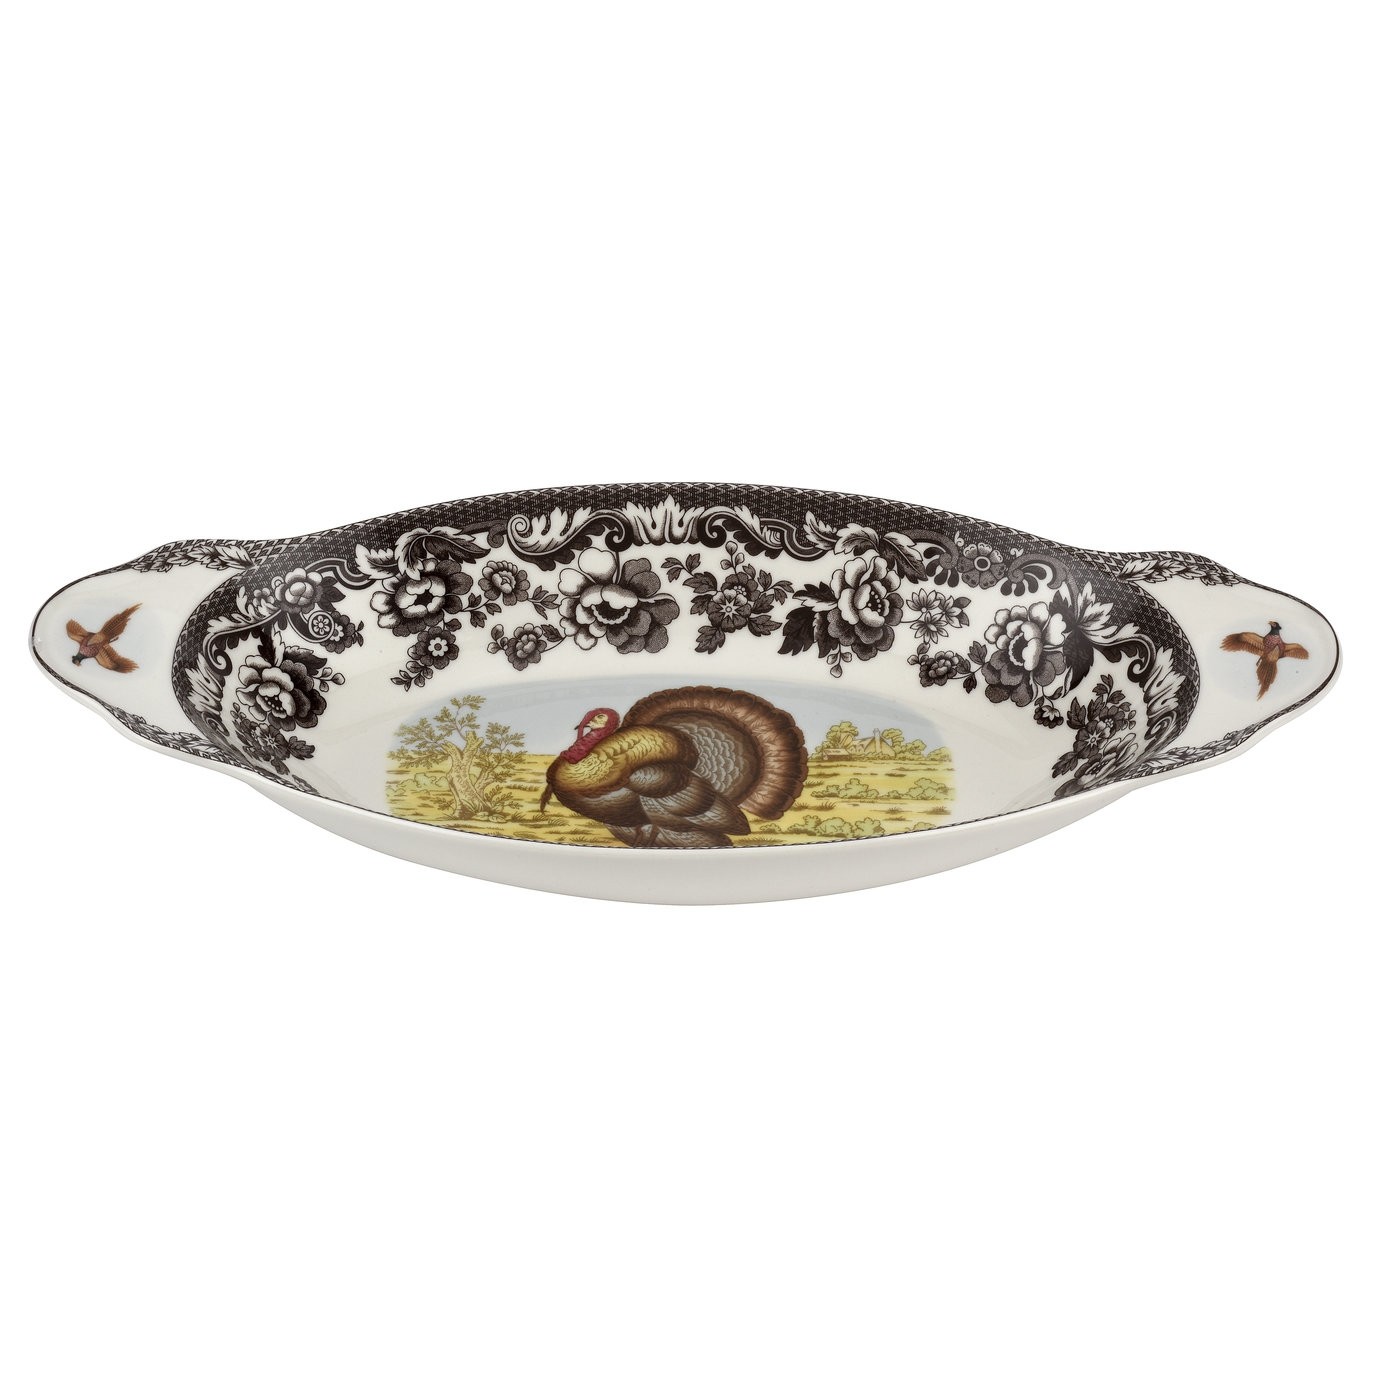 Spode Woodland Bread Tray 15.25 Inch (Turkey)  image number 0